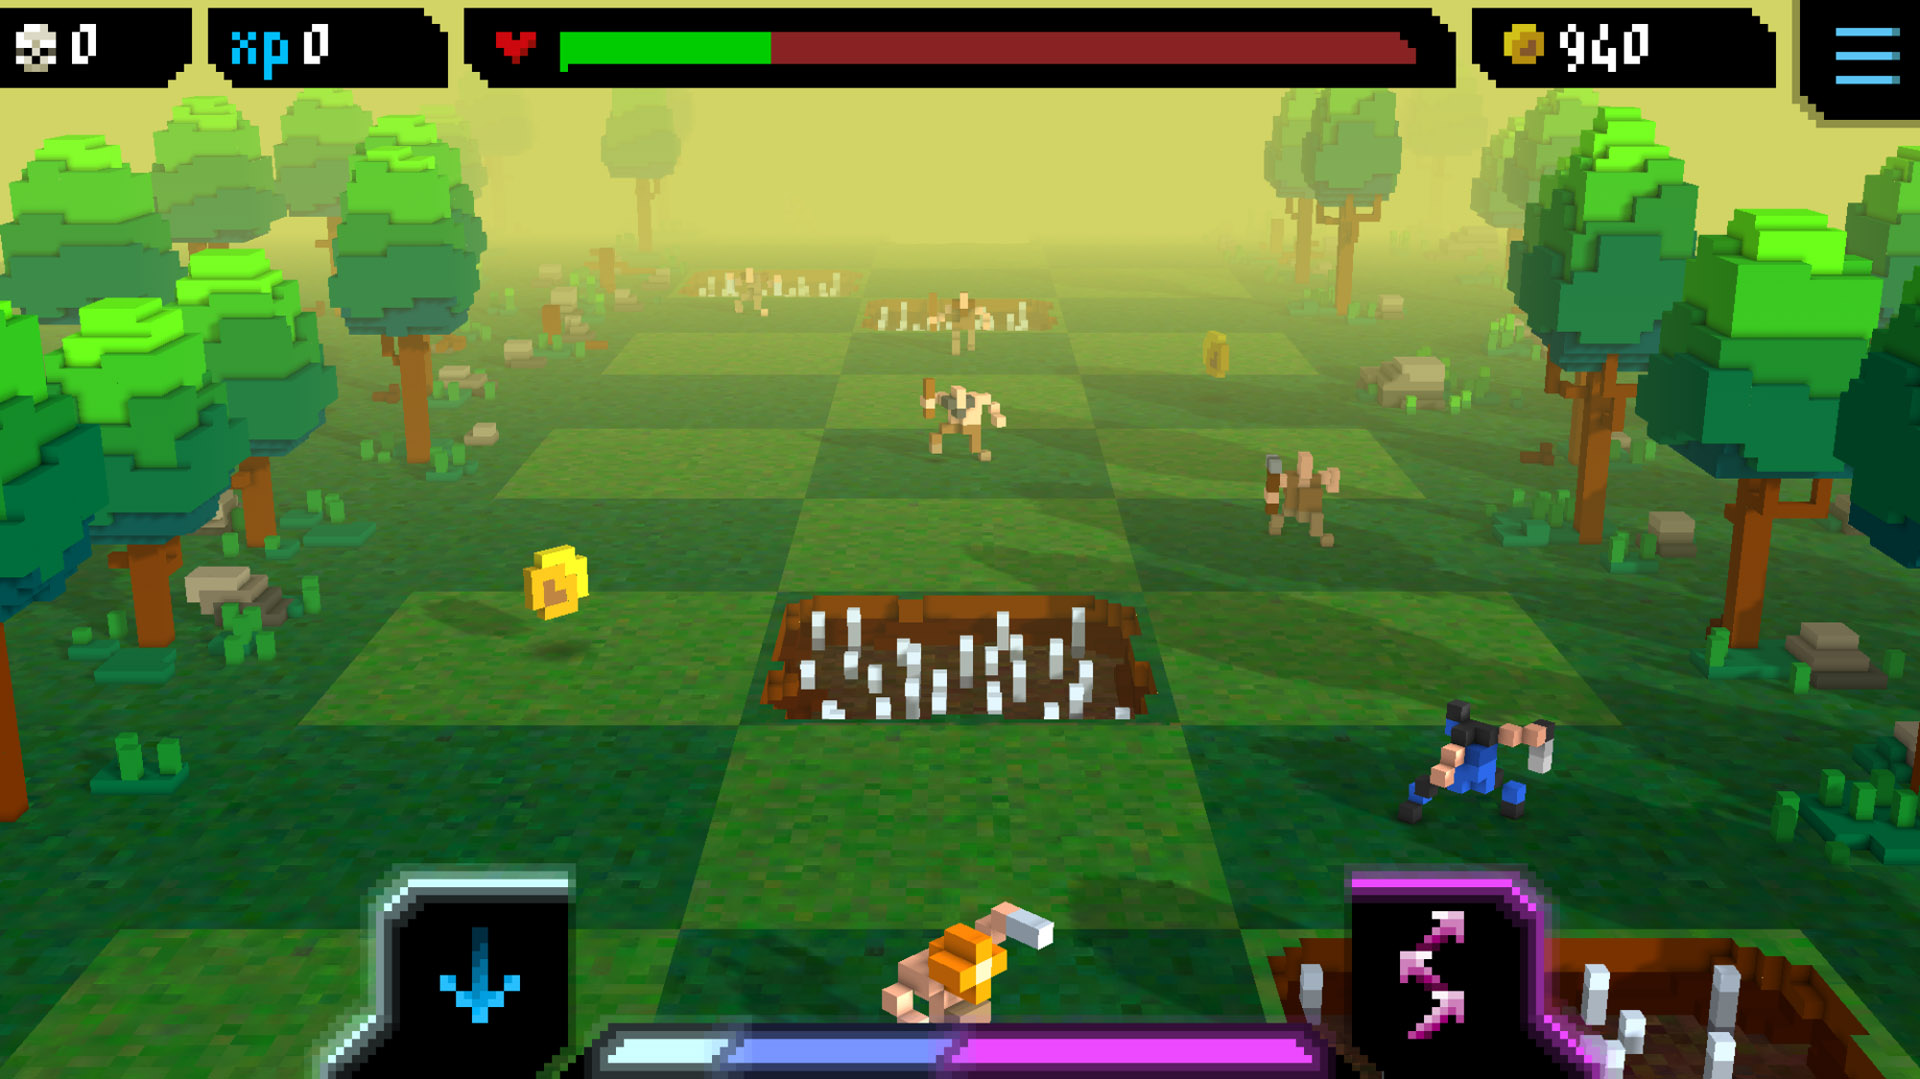 By jumping off the left side and then right side, the player can grab the Gold coin and kill the enemy in two jumps.